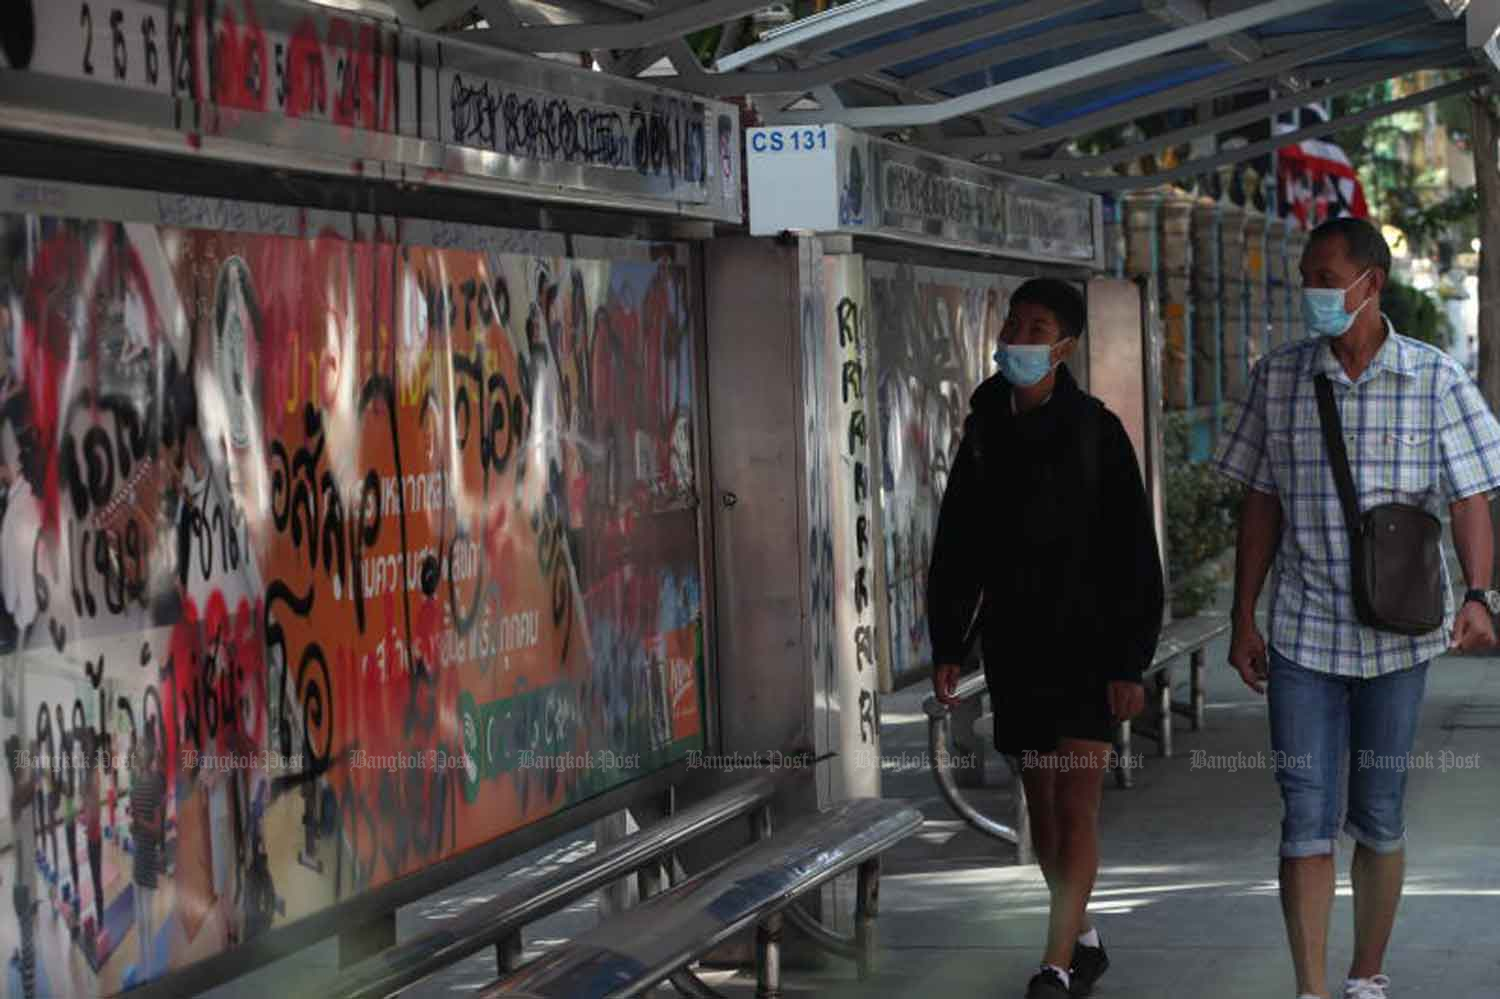 Pedestrians walk past a paint-sprayed bus stop in front of the Royal Thai Police Office in Pathumwan district, Bangkok, on Thursday, following the anti-government protest there and at adjacent Ratchaprasong intersection on Wednesday night. (Photo: Apichit Jinakul)